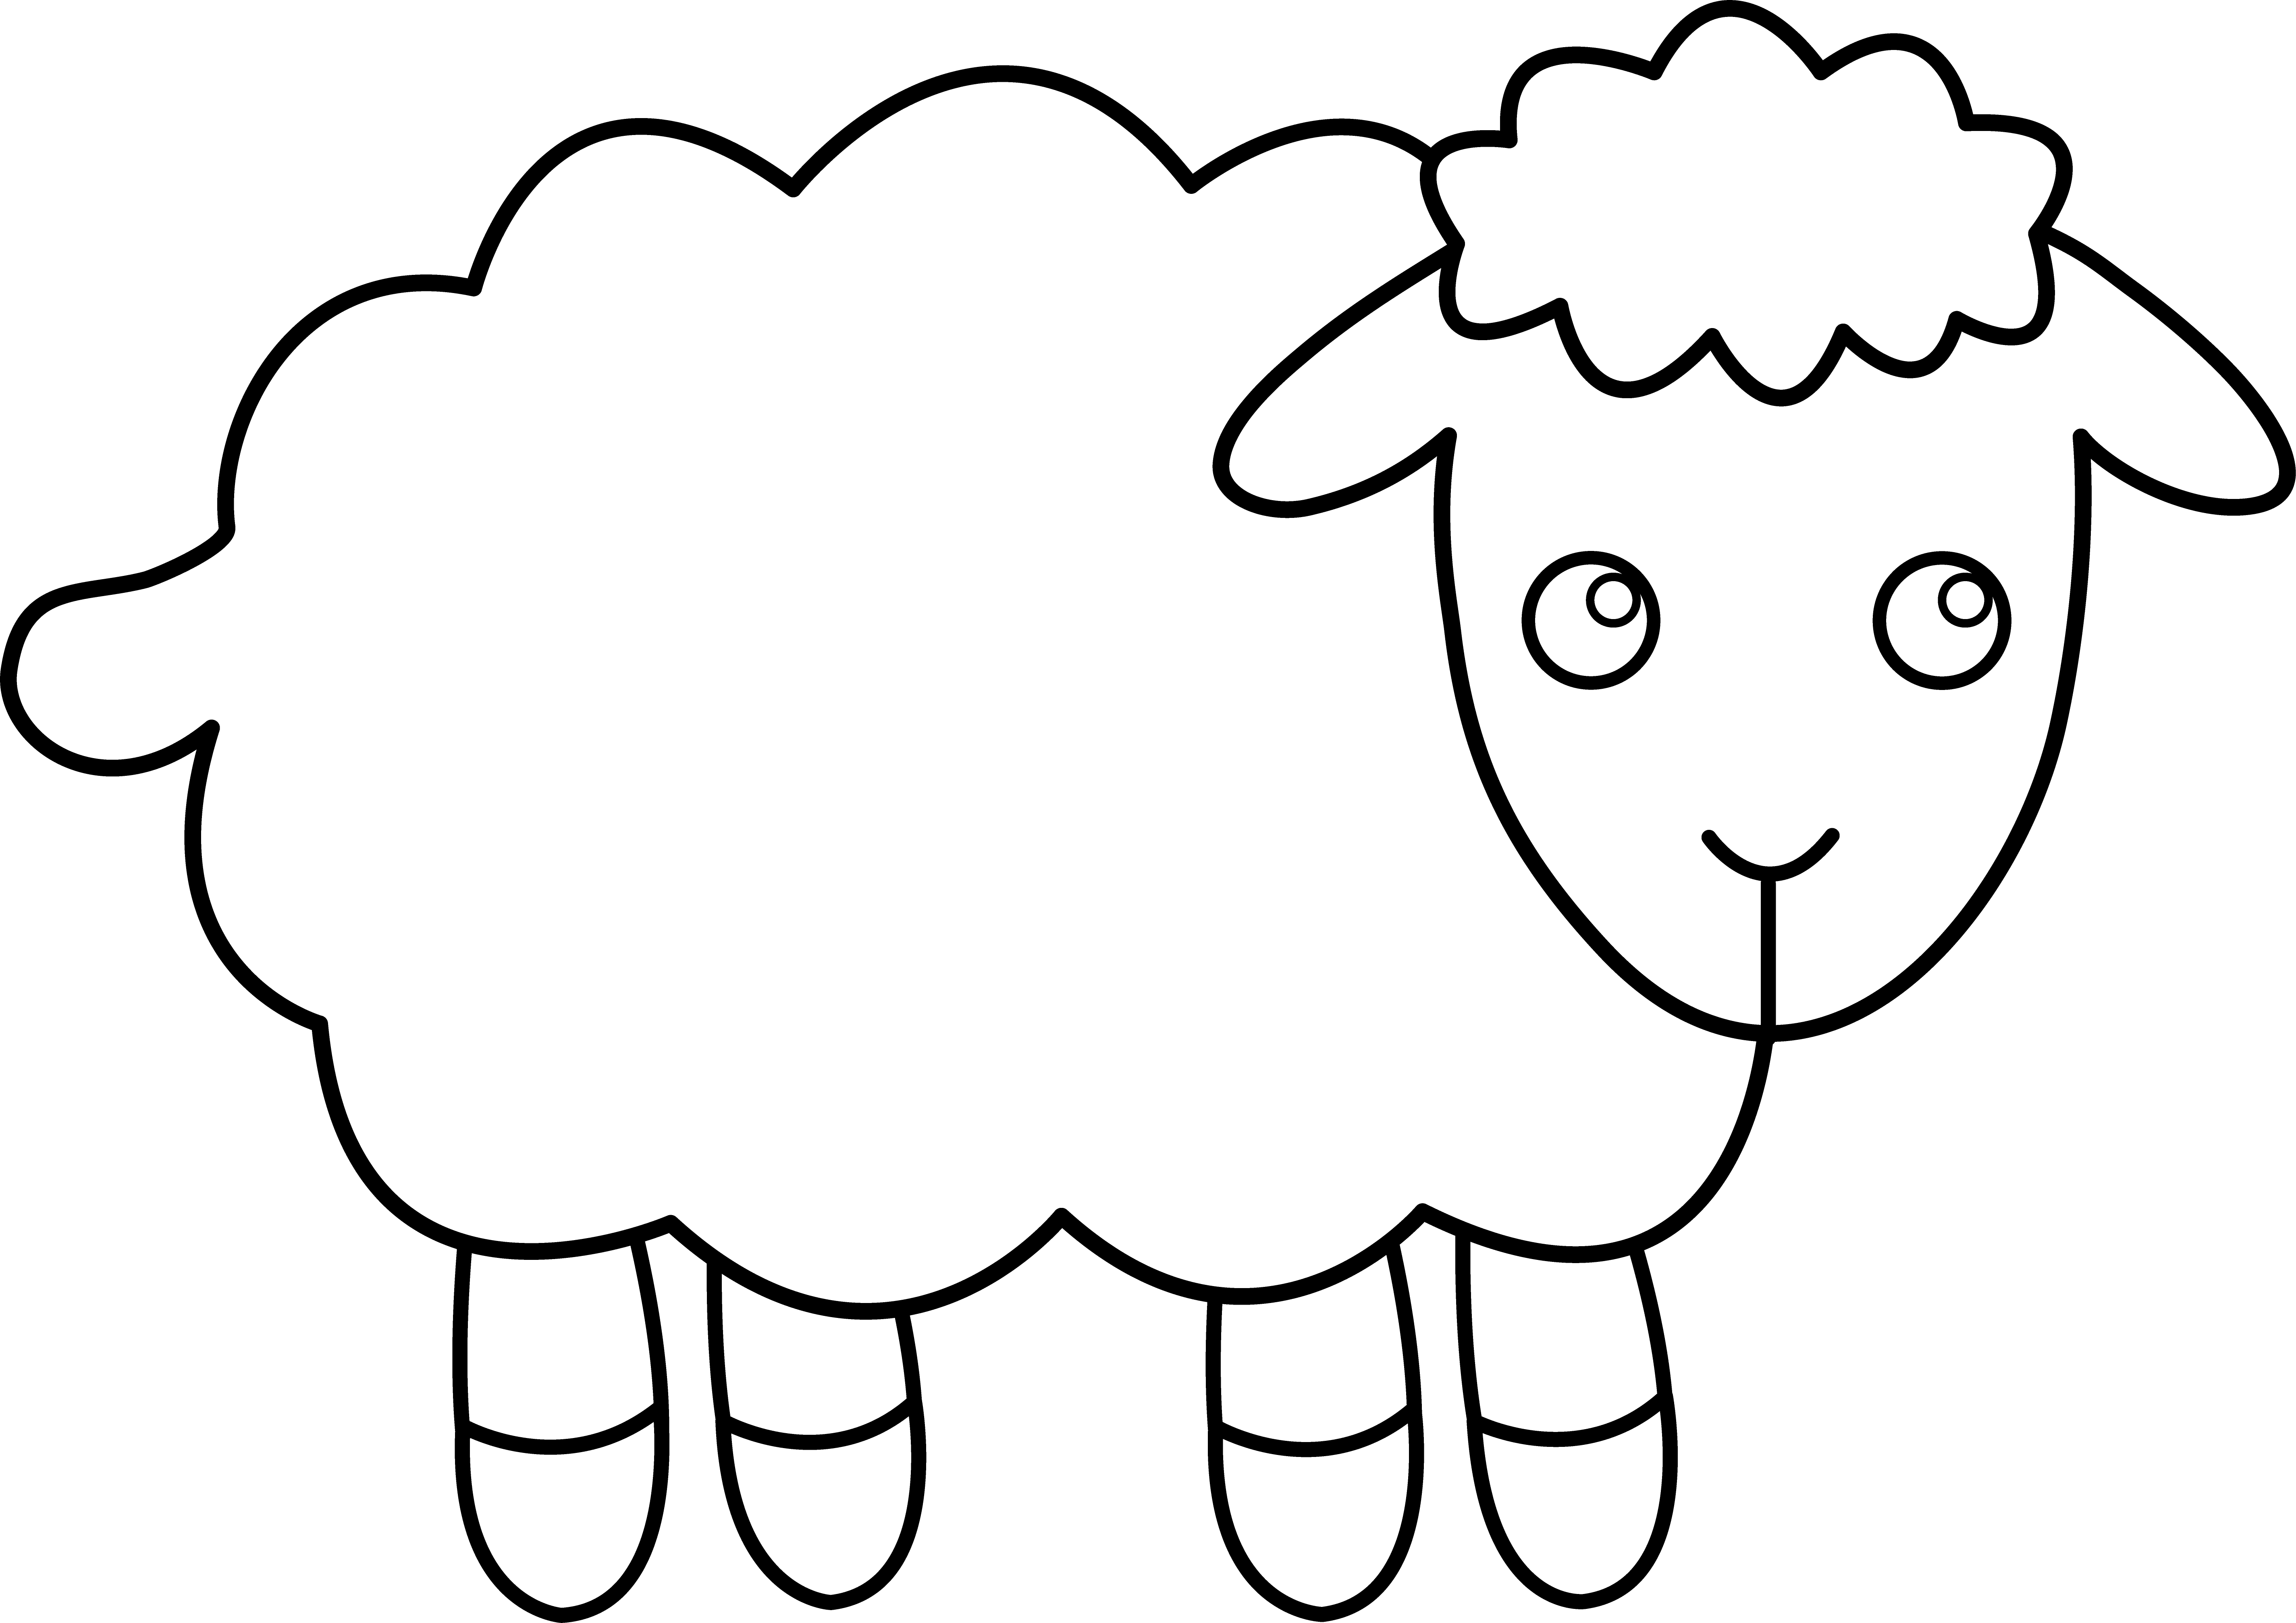 Baby farm animals clipart black and white lamb jpg download Sheep Clipart | Clipart Panda - Free Clipart Images | quilts | Sheep ... jpg download